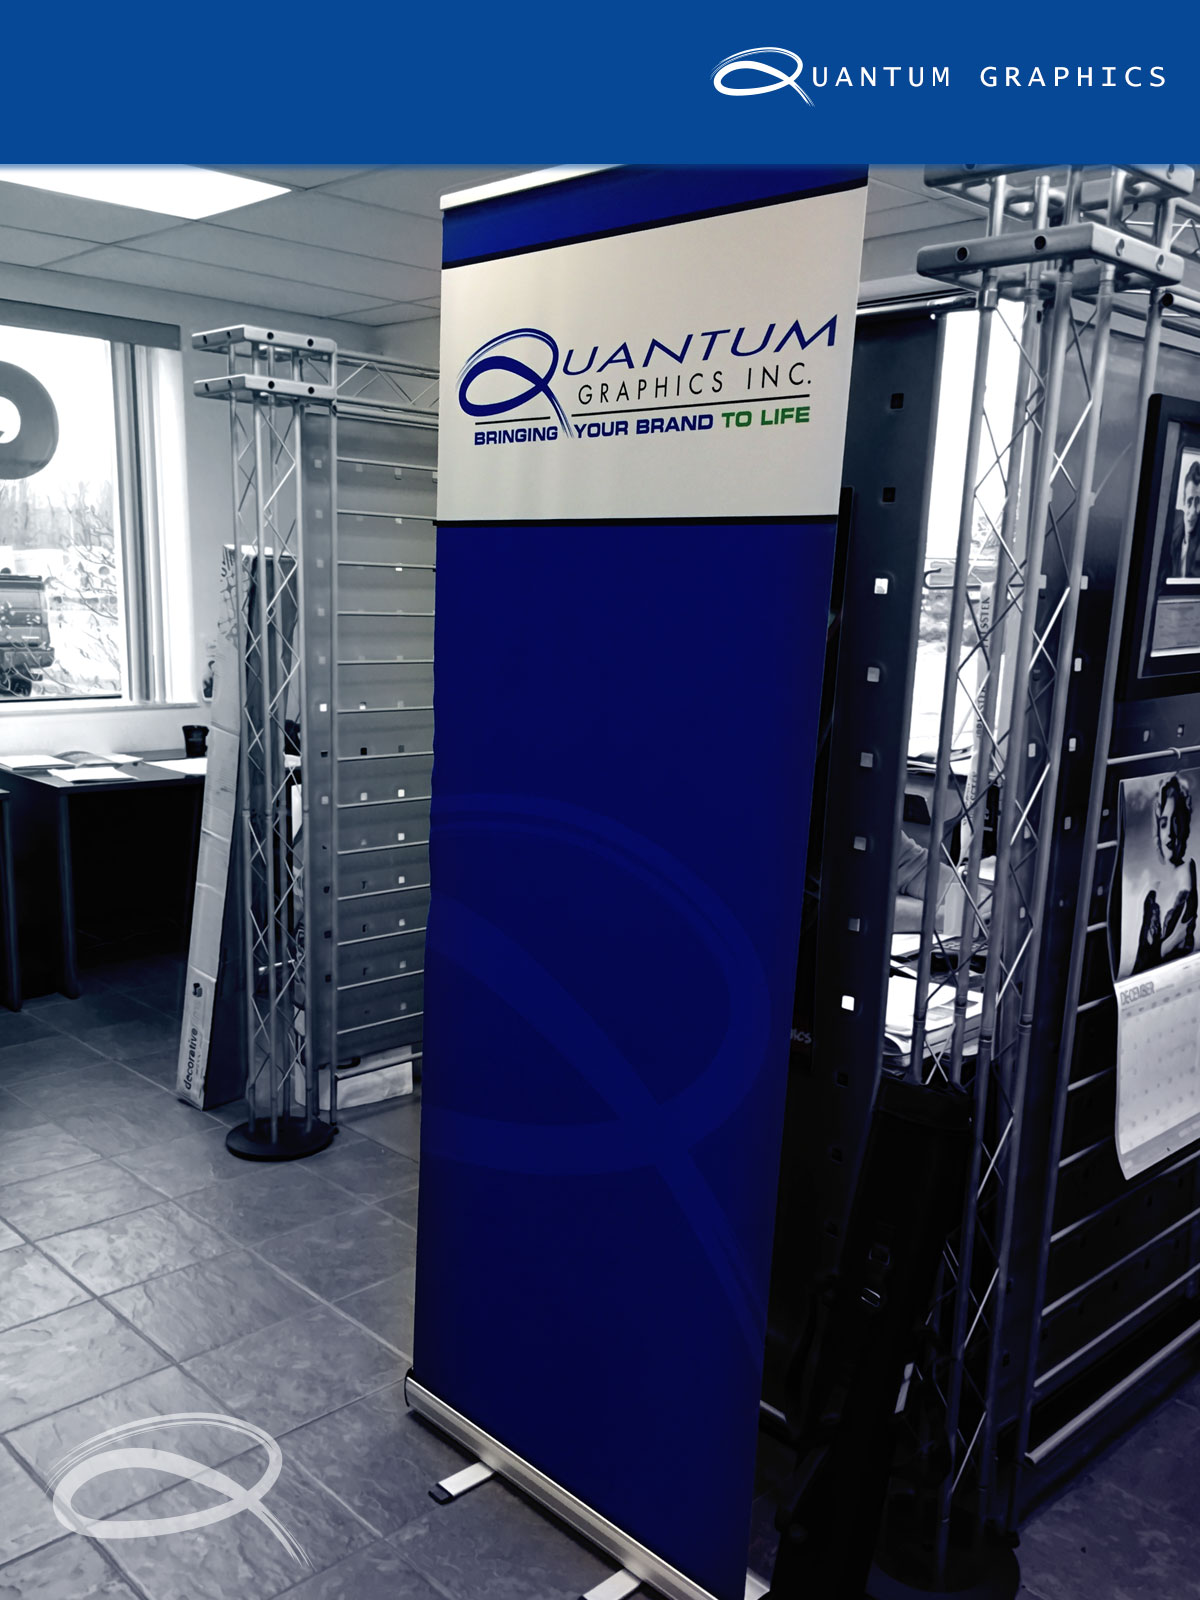 quantum graphics pop-up banner inside the main offices